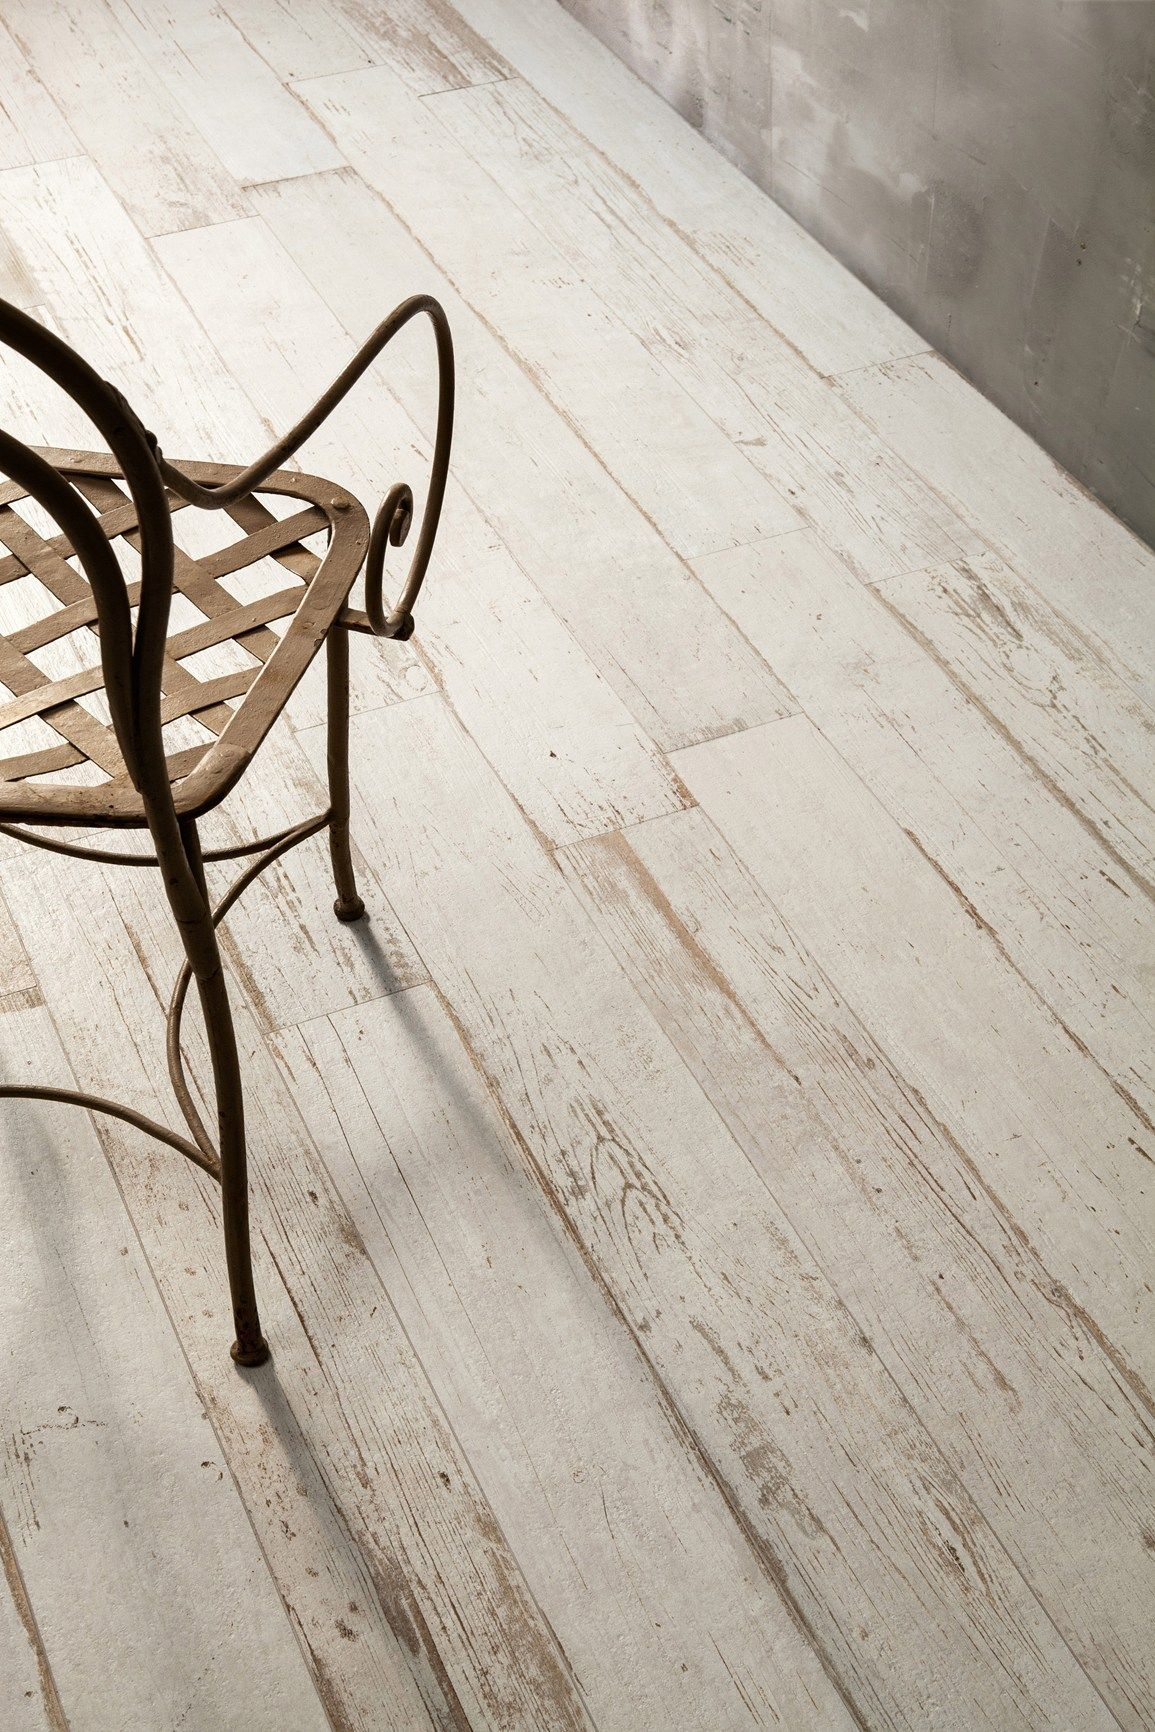 this incredible distressed wood floor has a secret its not really wood its wood looking tile introducing blendart the new porcelain tile collection - Distressed White Wood Flooring